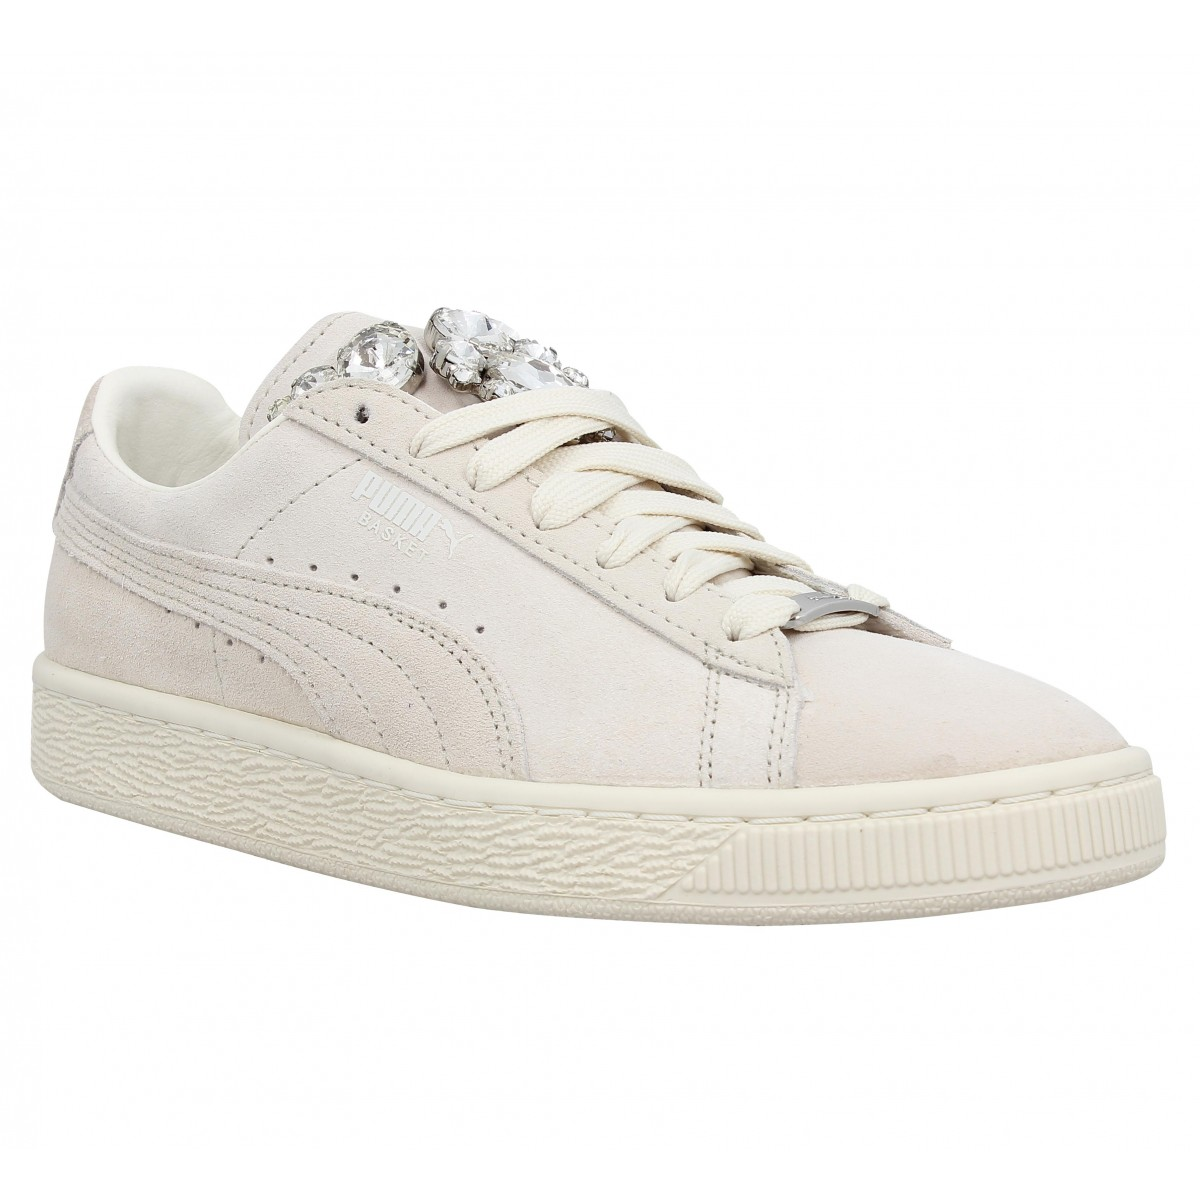 Puma Puma Puma Basket Jewels-39-blanc